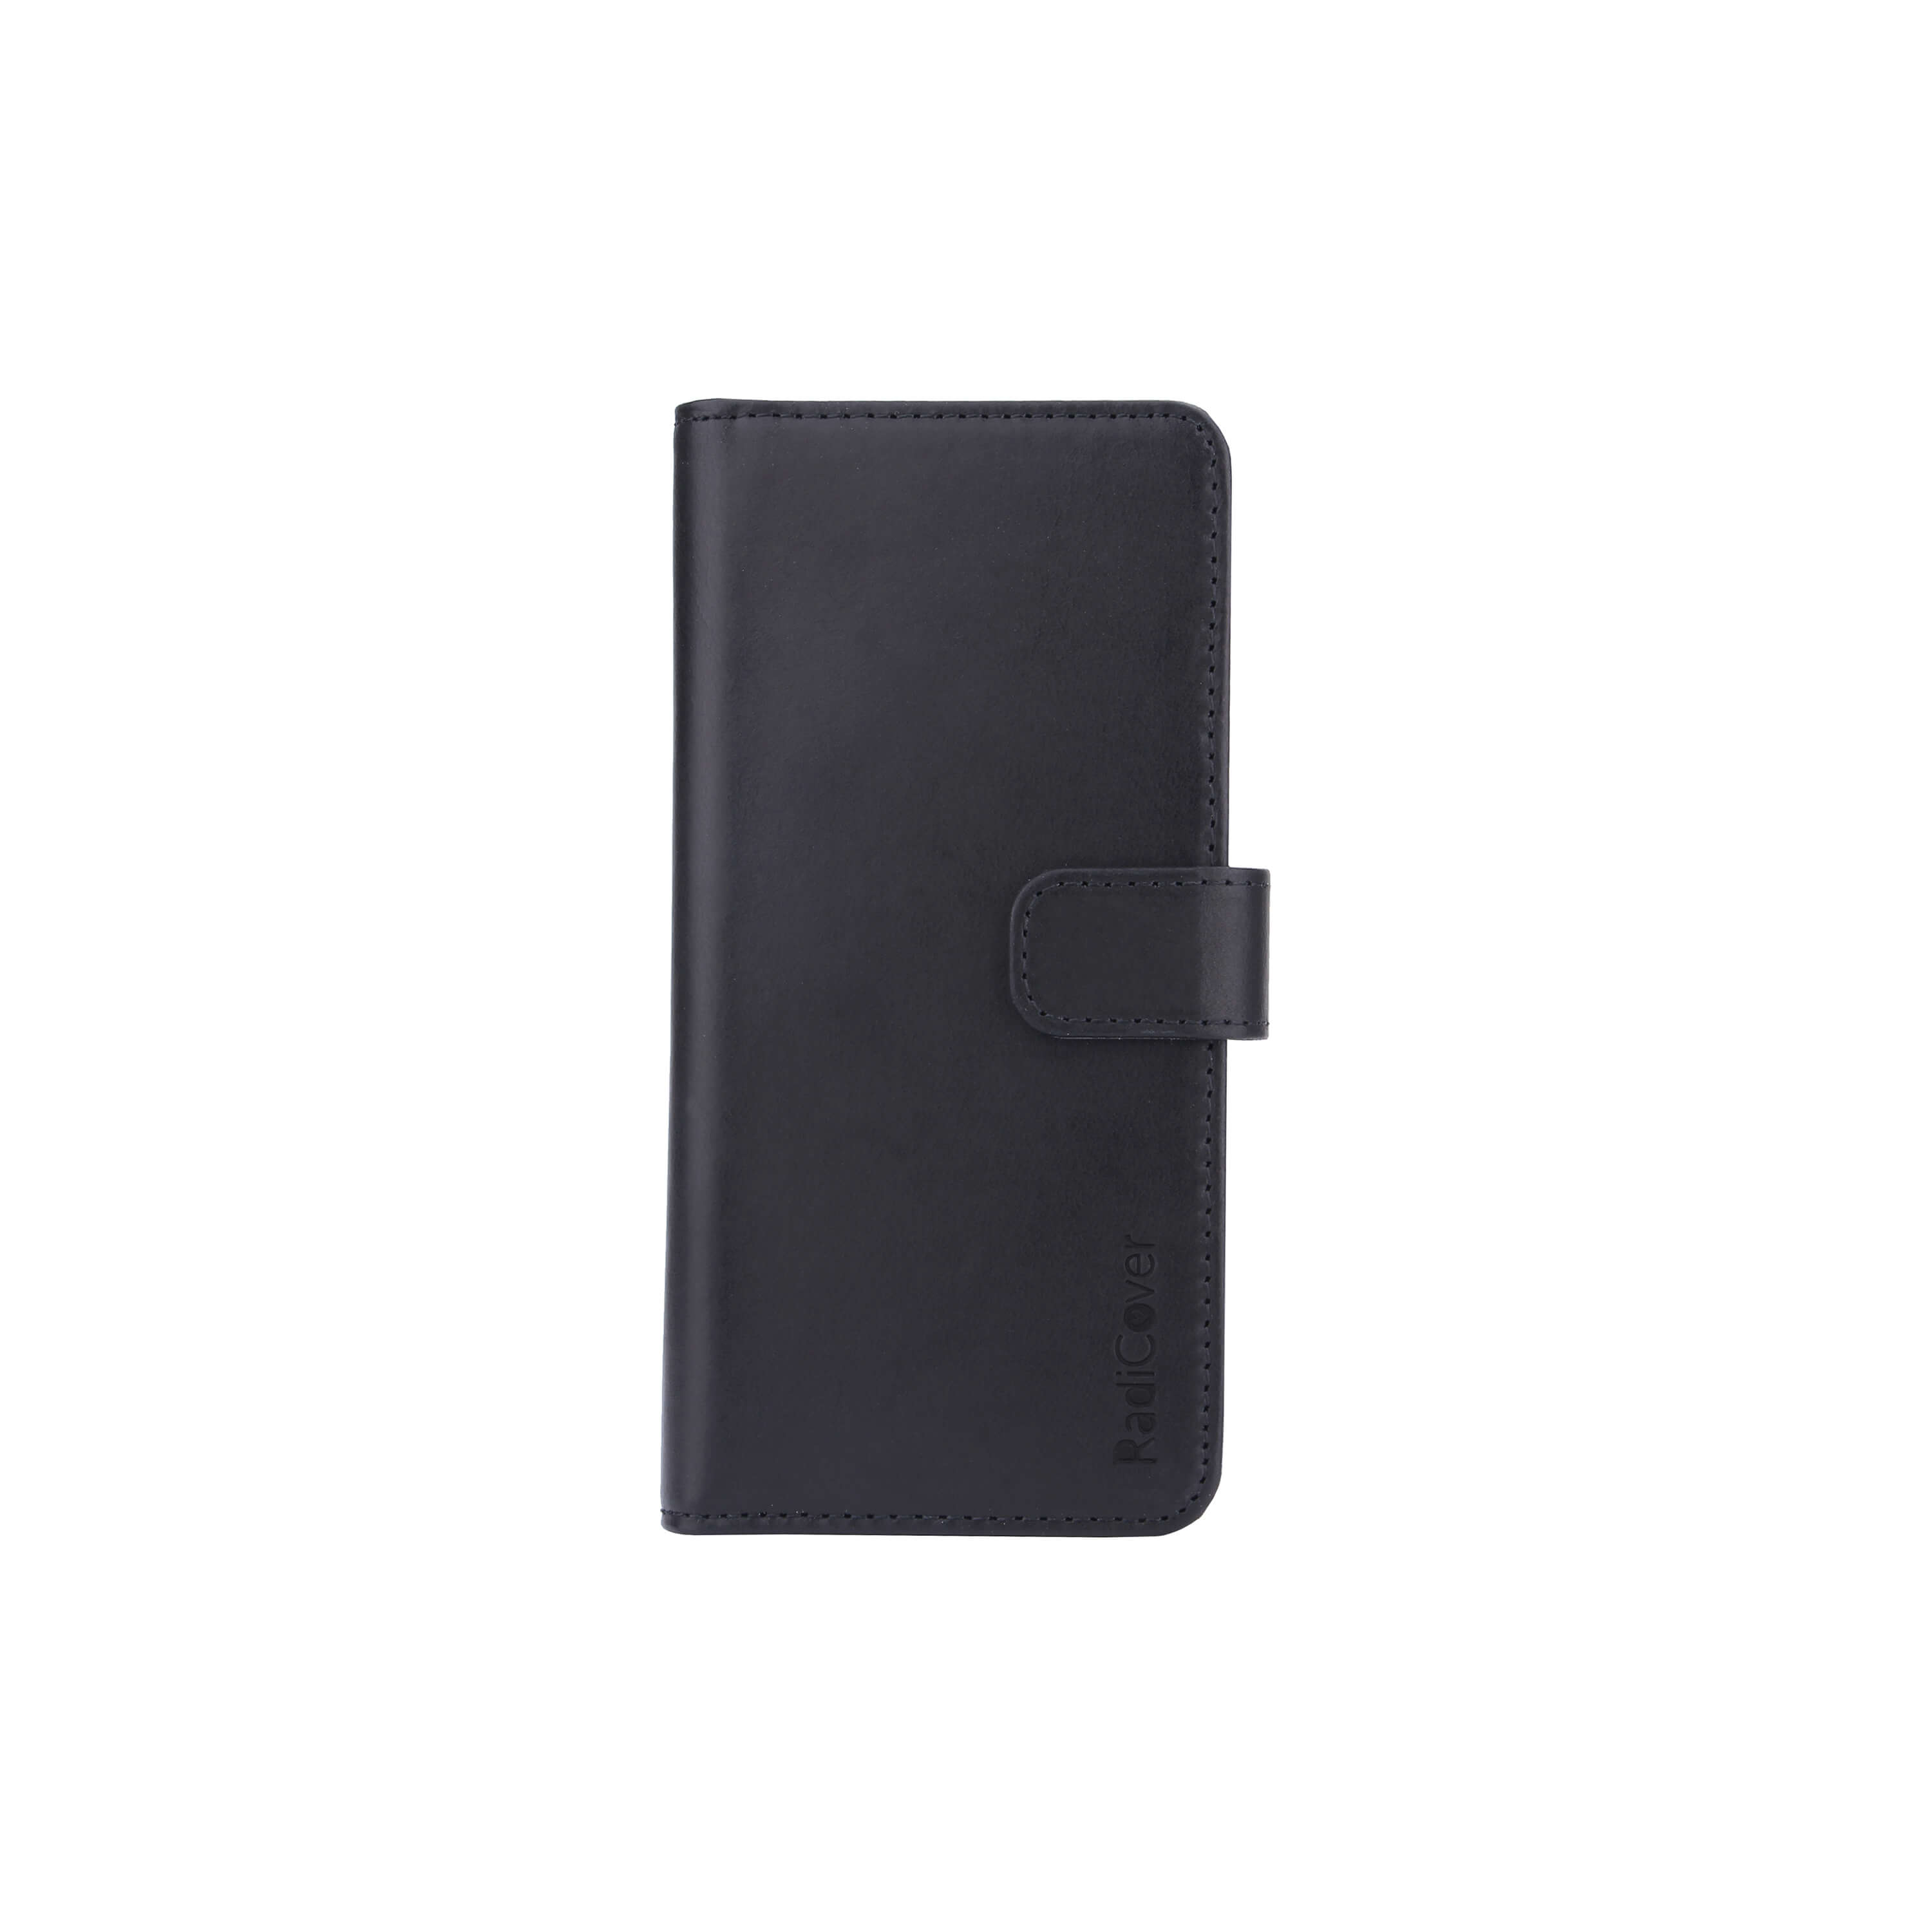 Radicover - Radiation protection wallet Leather Samsung S10 Exclusive 2in1